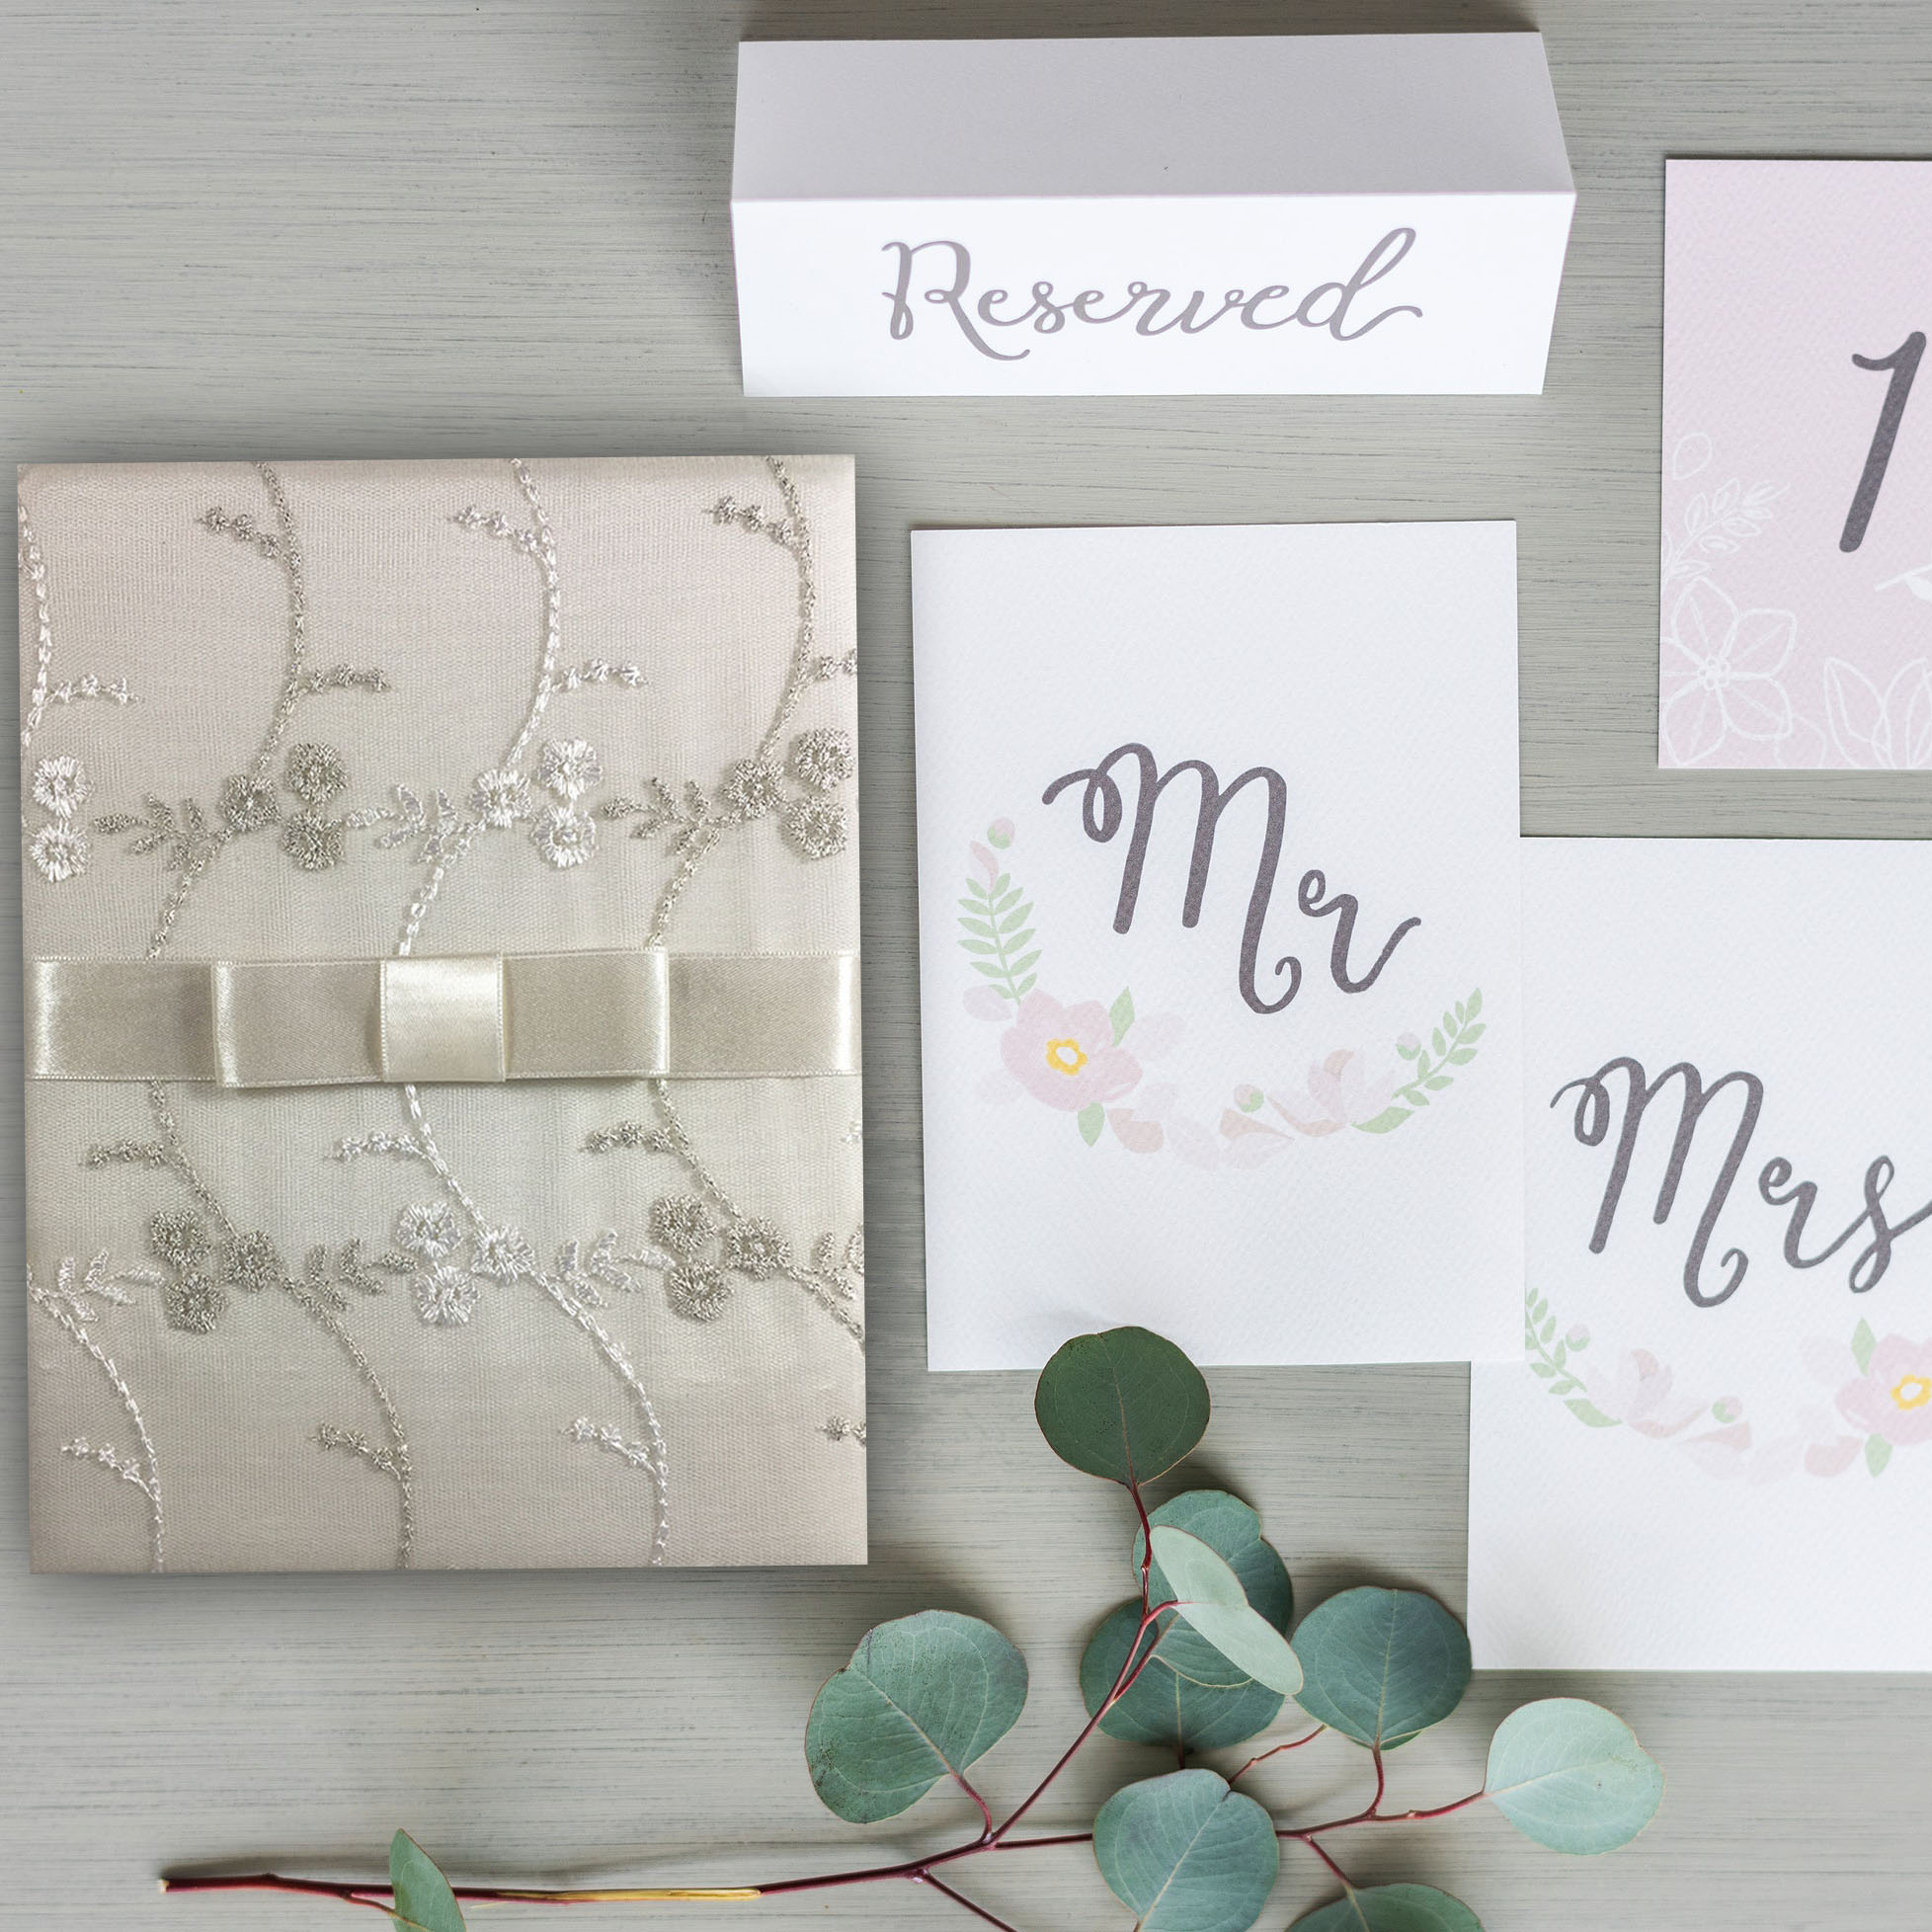 Embroidered lace invitation with bow